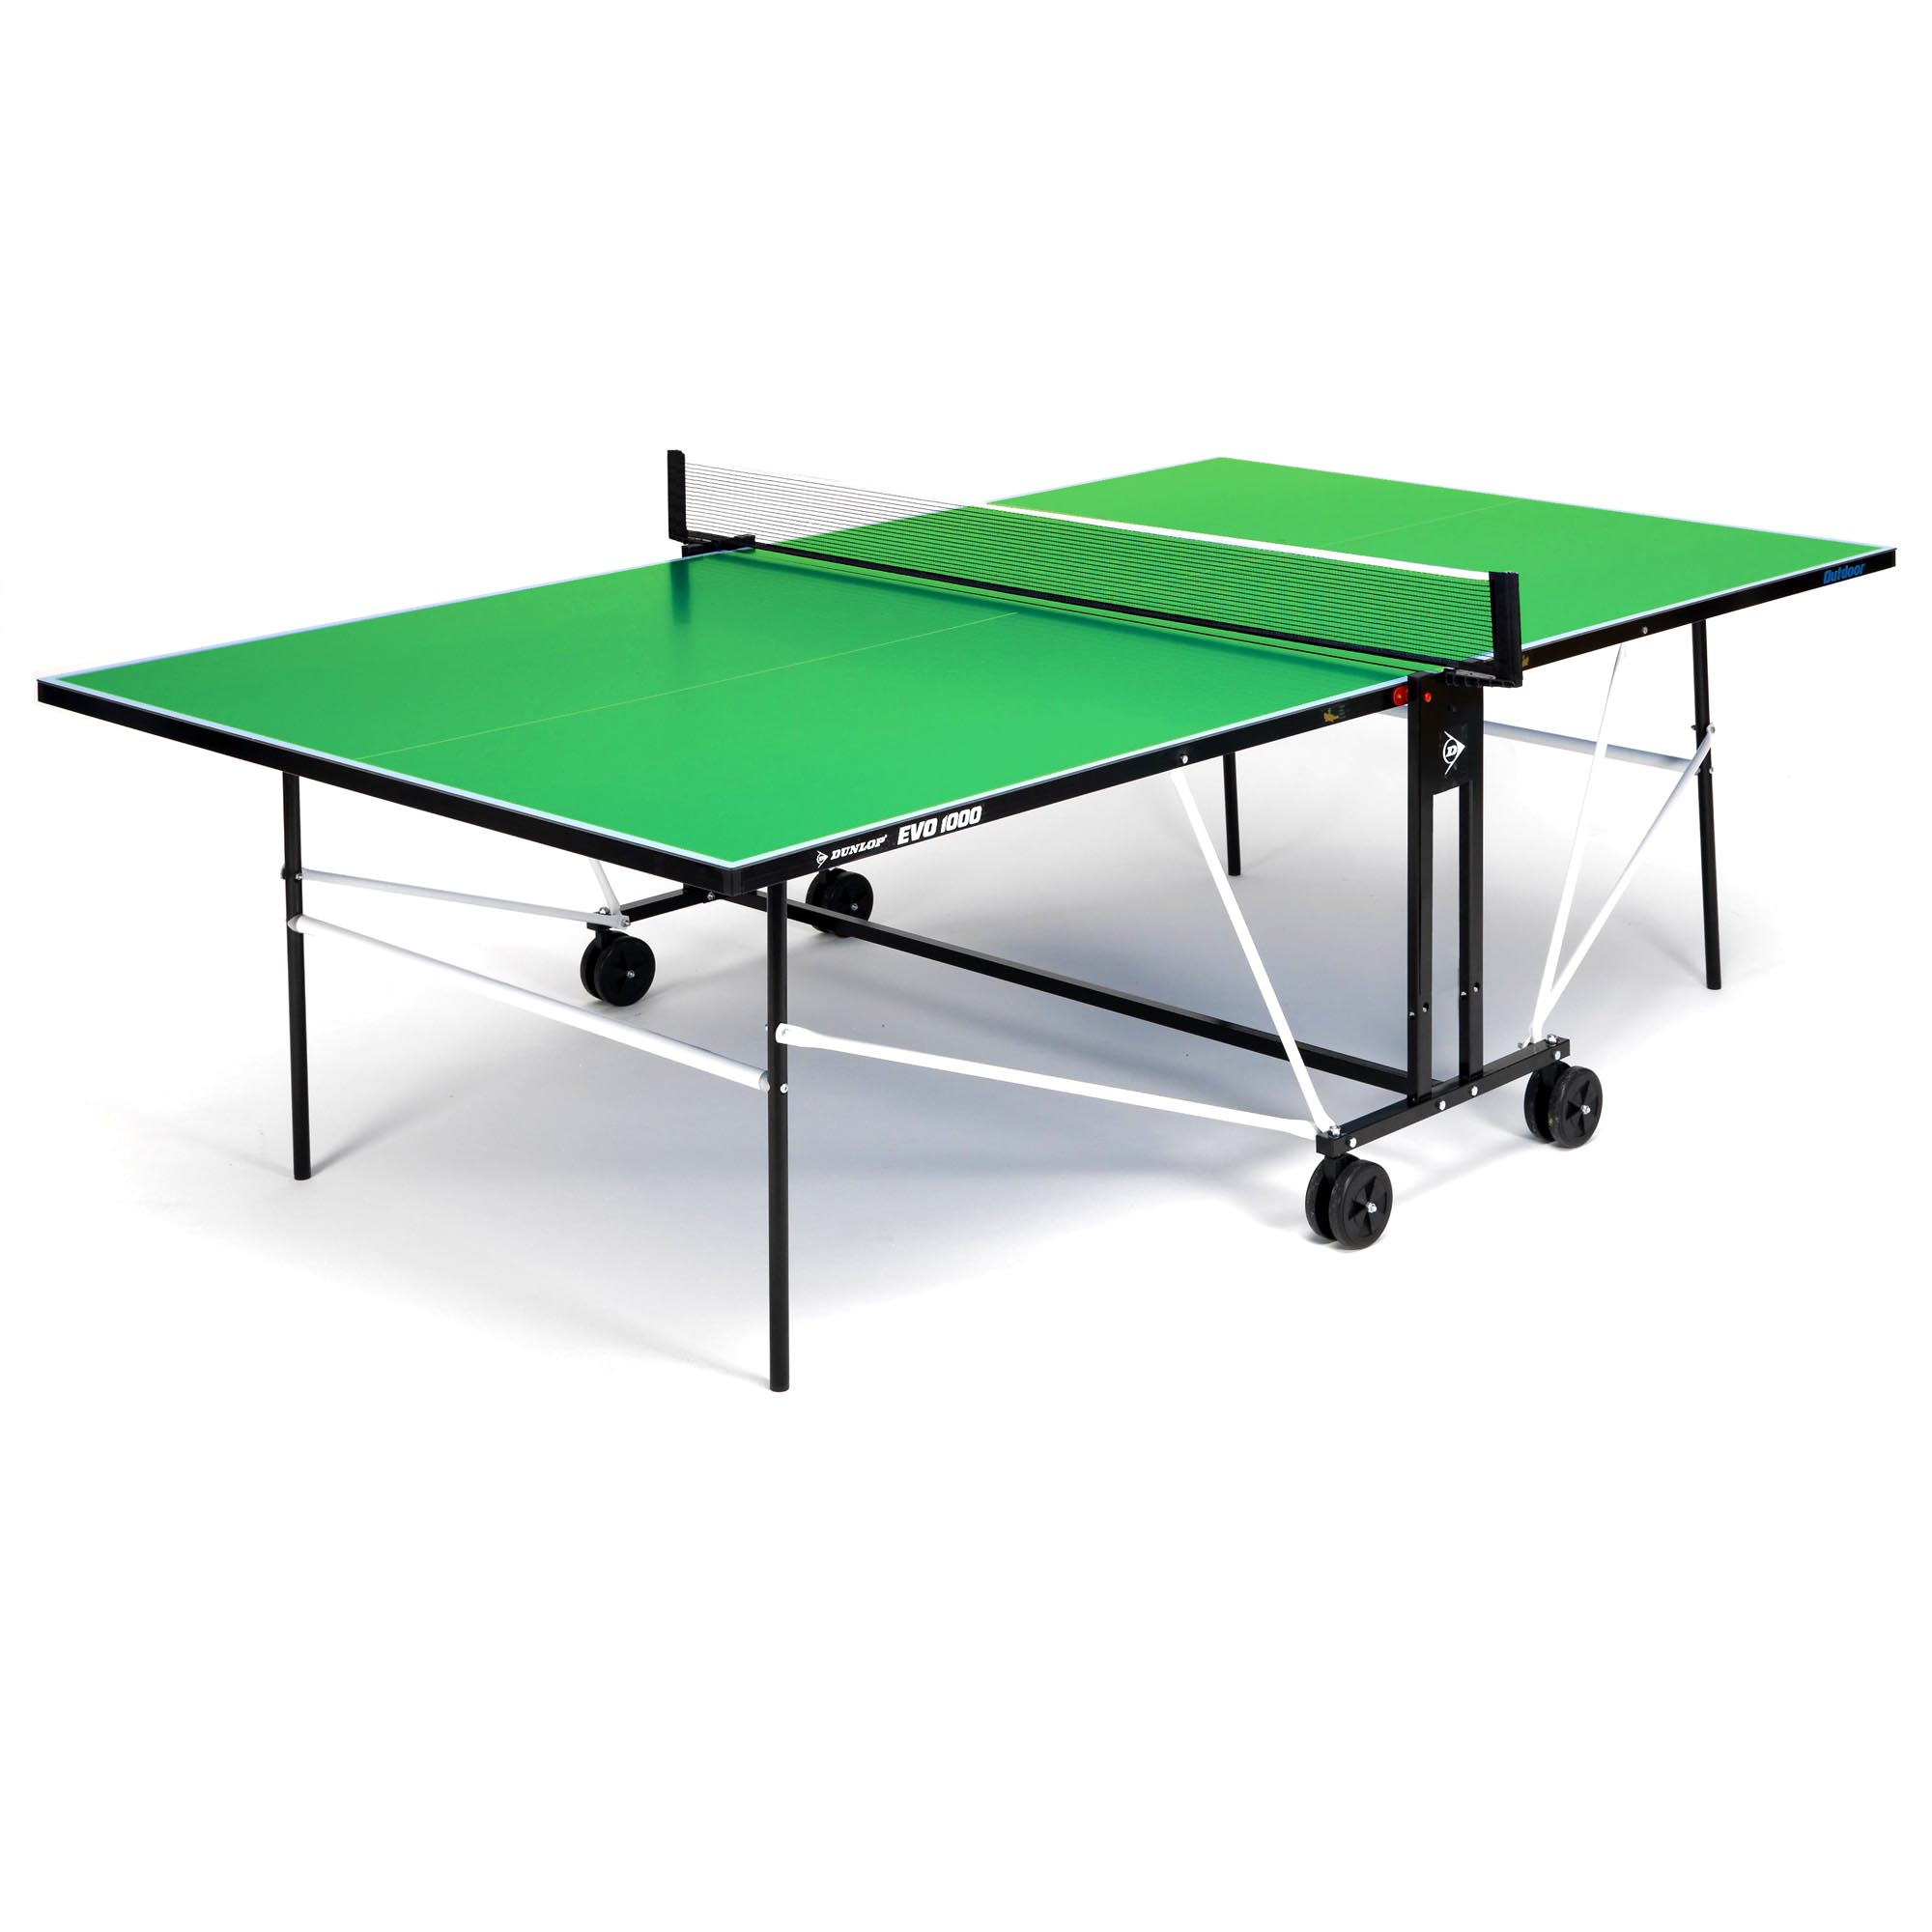 Table tennis shop for cheap table tennis and save online for Table tennis